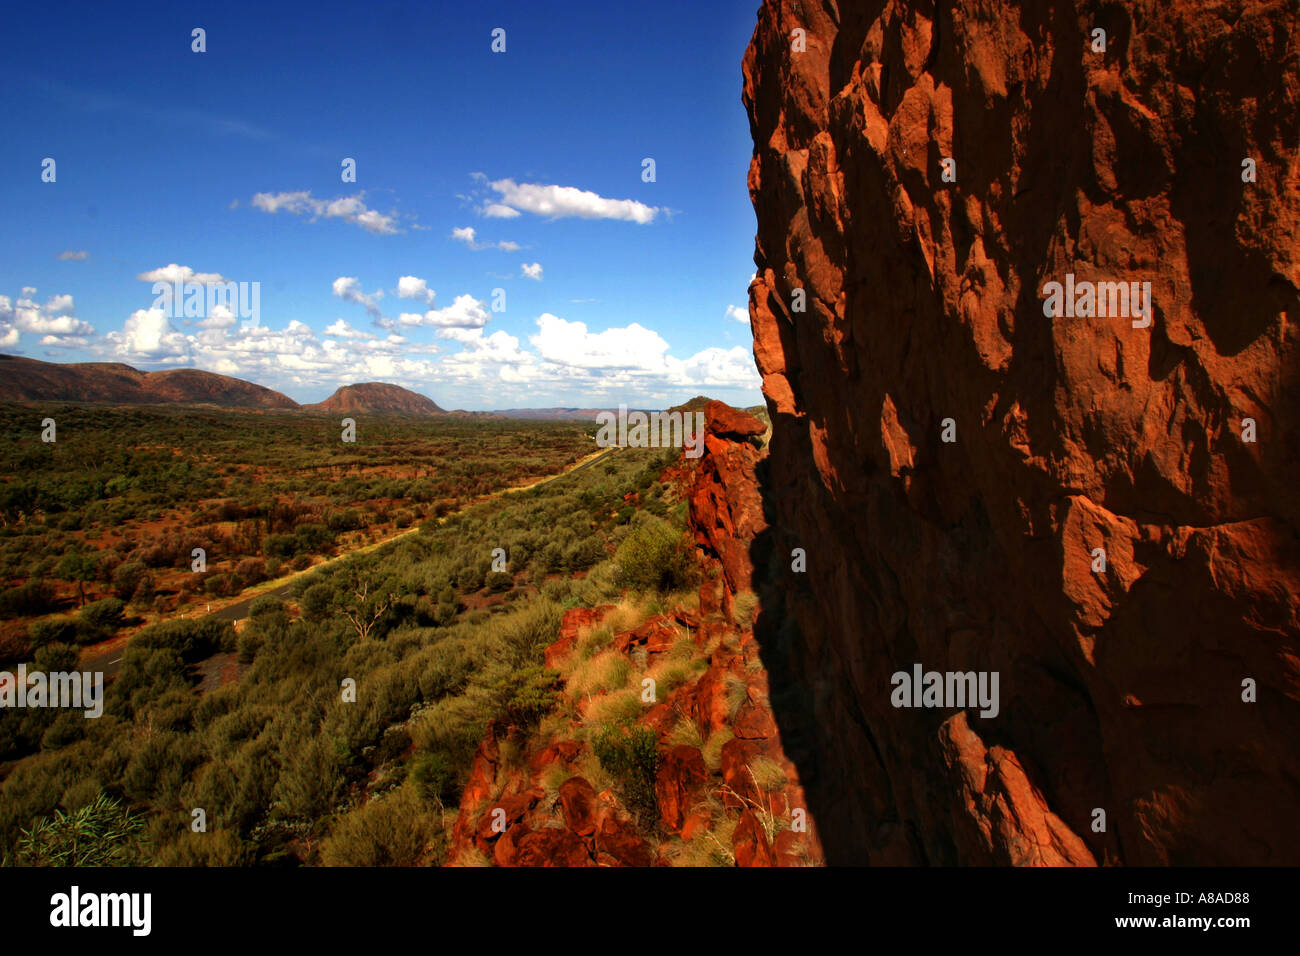 Macdonnell range in the Central Australian outback. - Stock Image